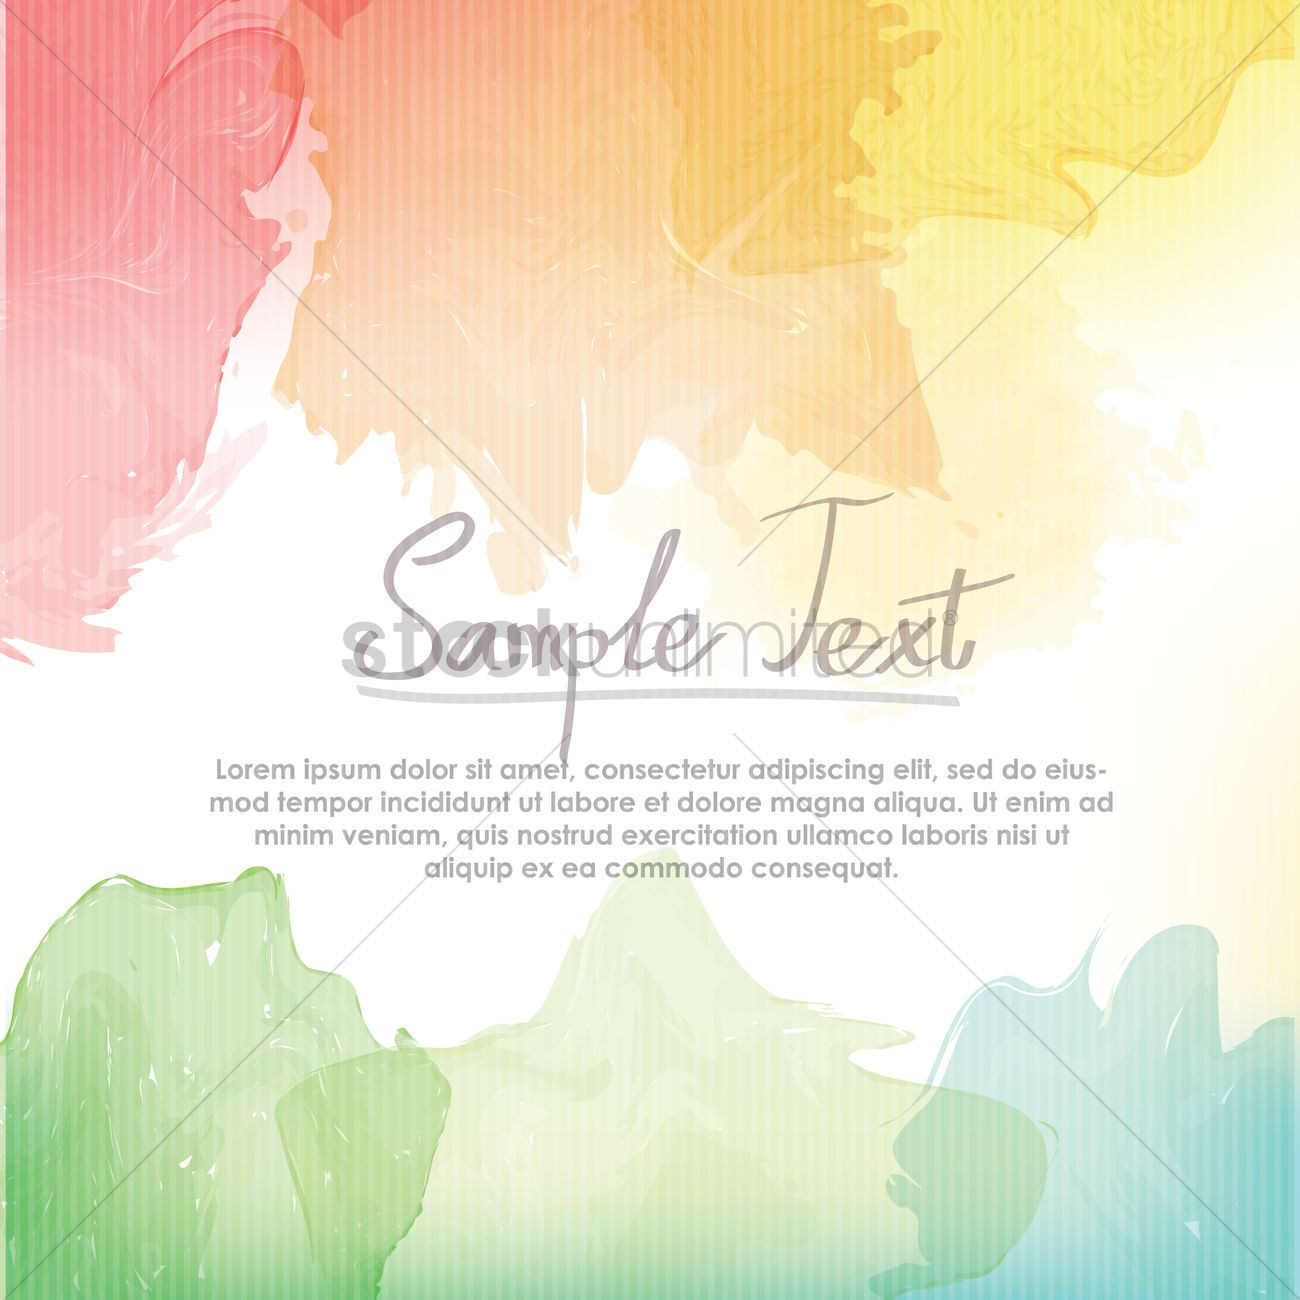 Watercolor Background Design Vector Image 1972341 Stockunlimited